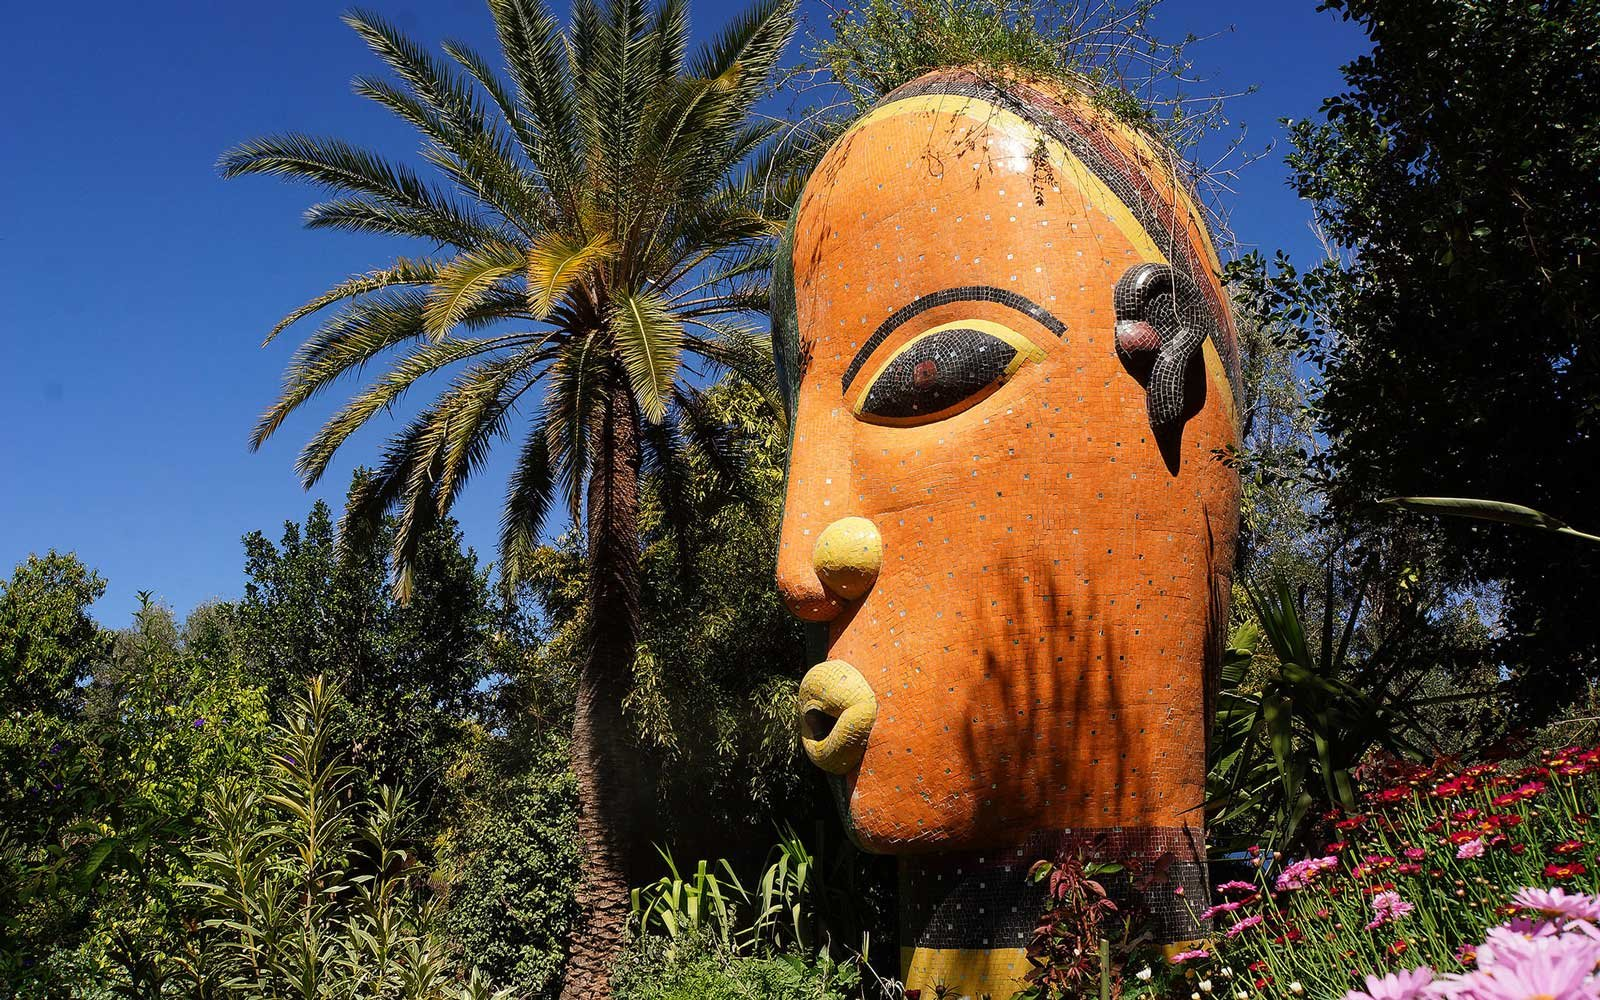 Andre Heller's ANIMA art garden in Marrakech, Morocco